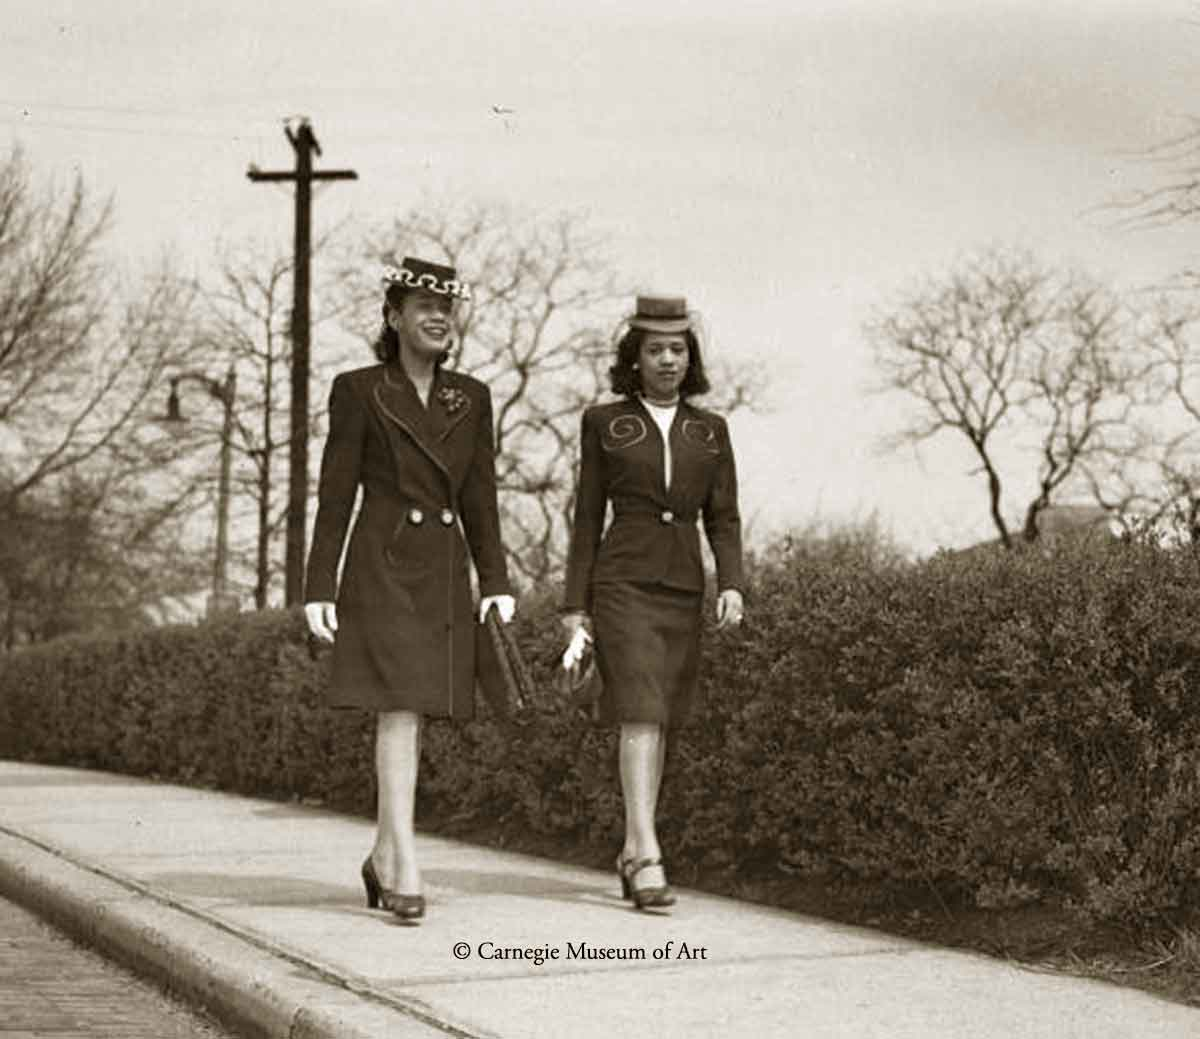 1940s Black Fashion -1945 - Teenie Harris